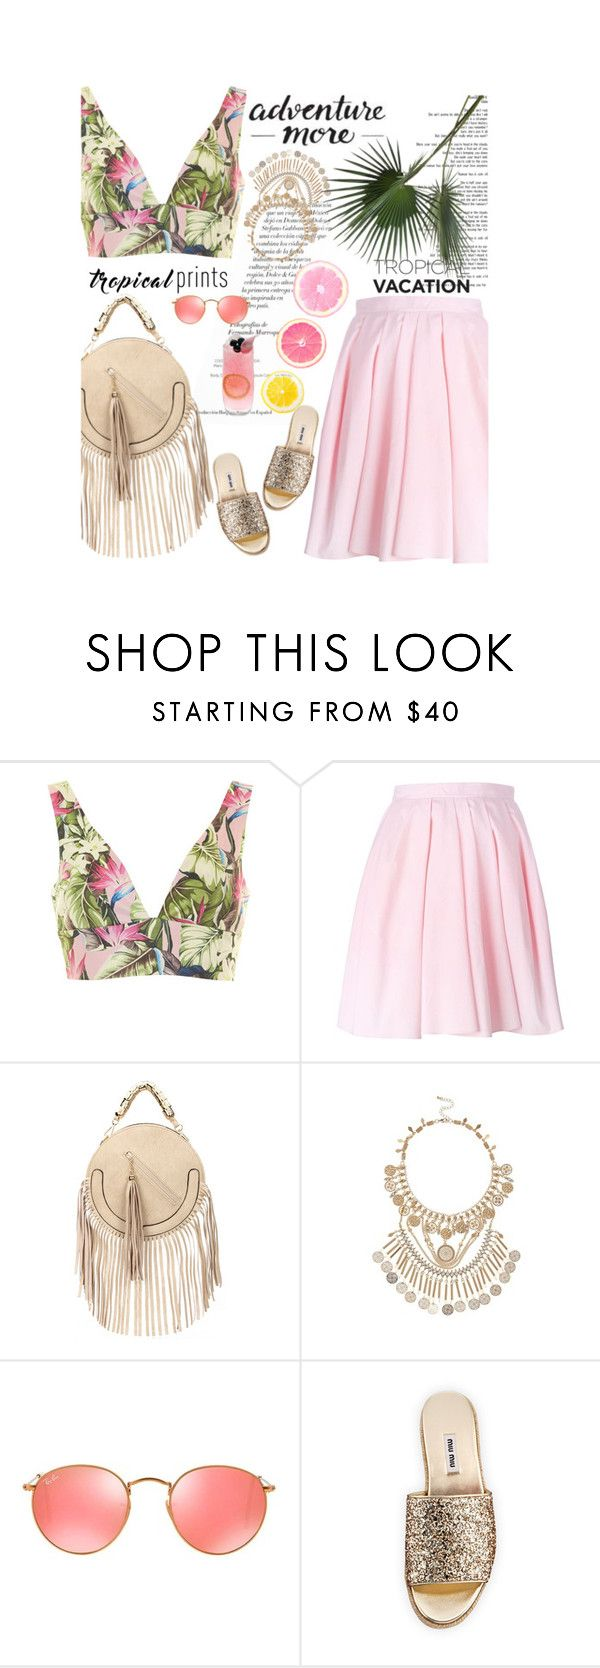 """Untitled #2111"" by amimcqueen ❤ liked on Polyvore featuring Topshop, Carven, Monday, River Island, Ray-Ban, Miu Miu and John-Richard"